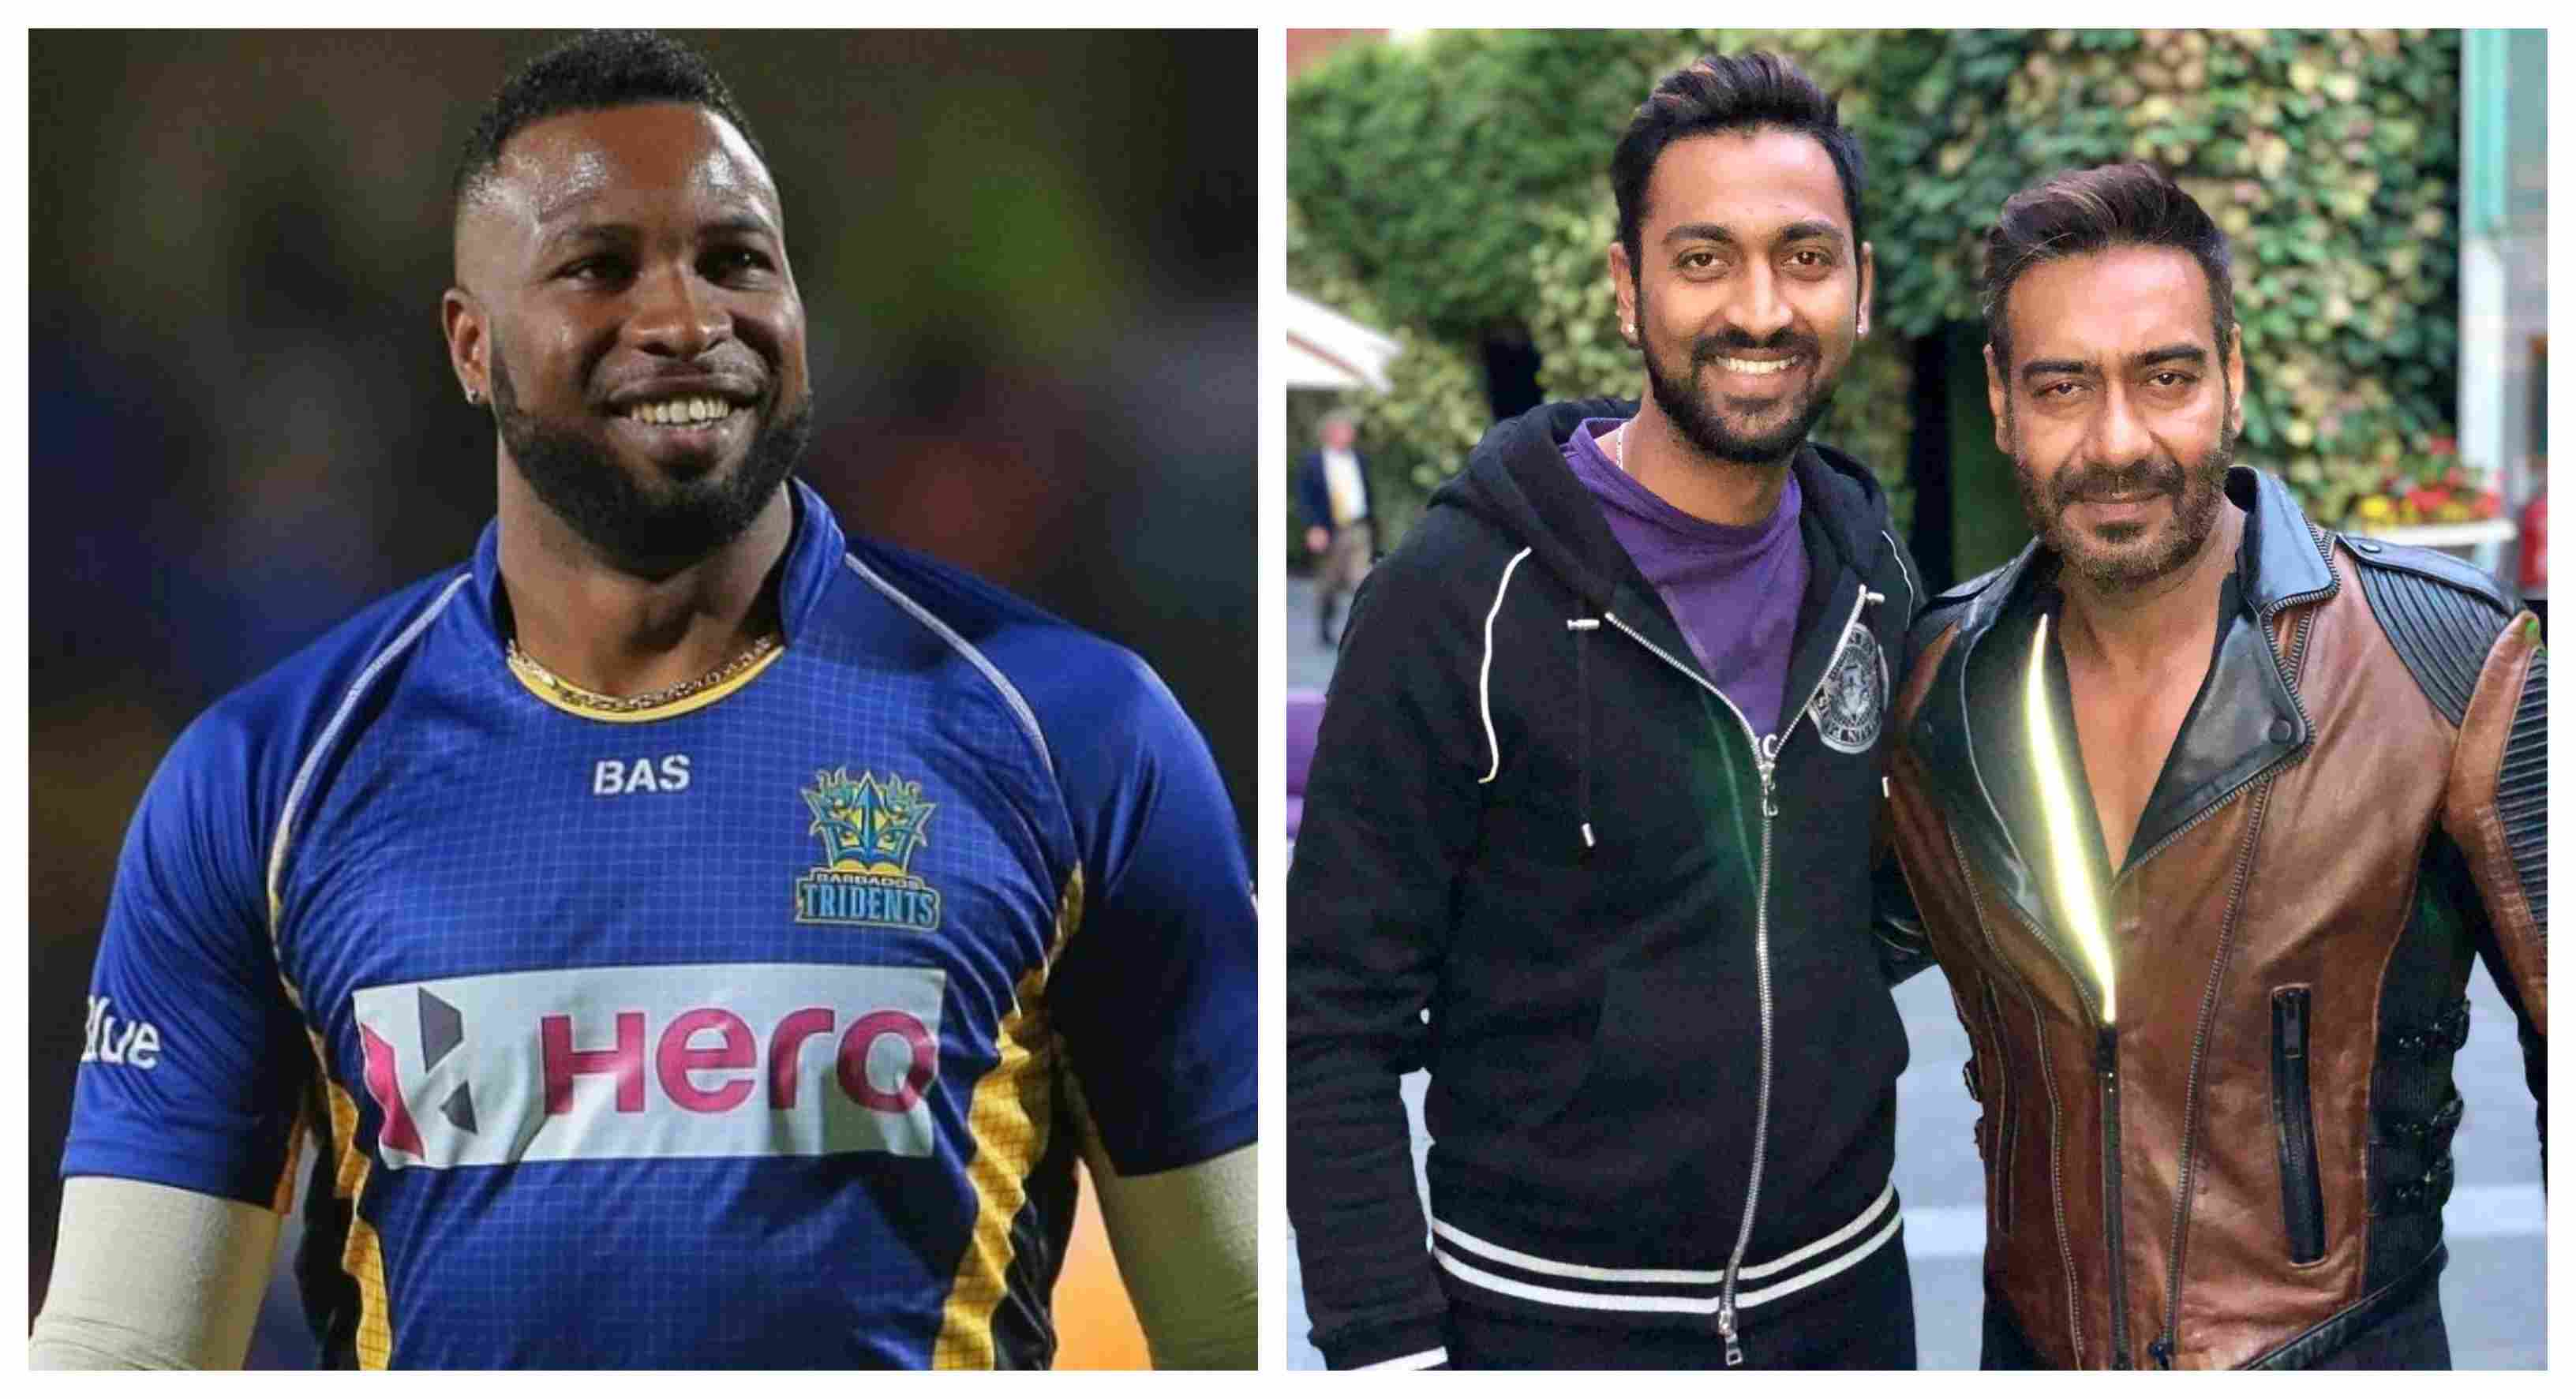 Krunal Pandya's picture with Ajay Devgan spurs humour among him and Pollard